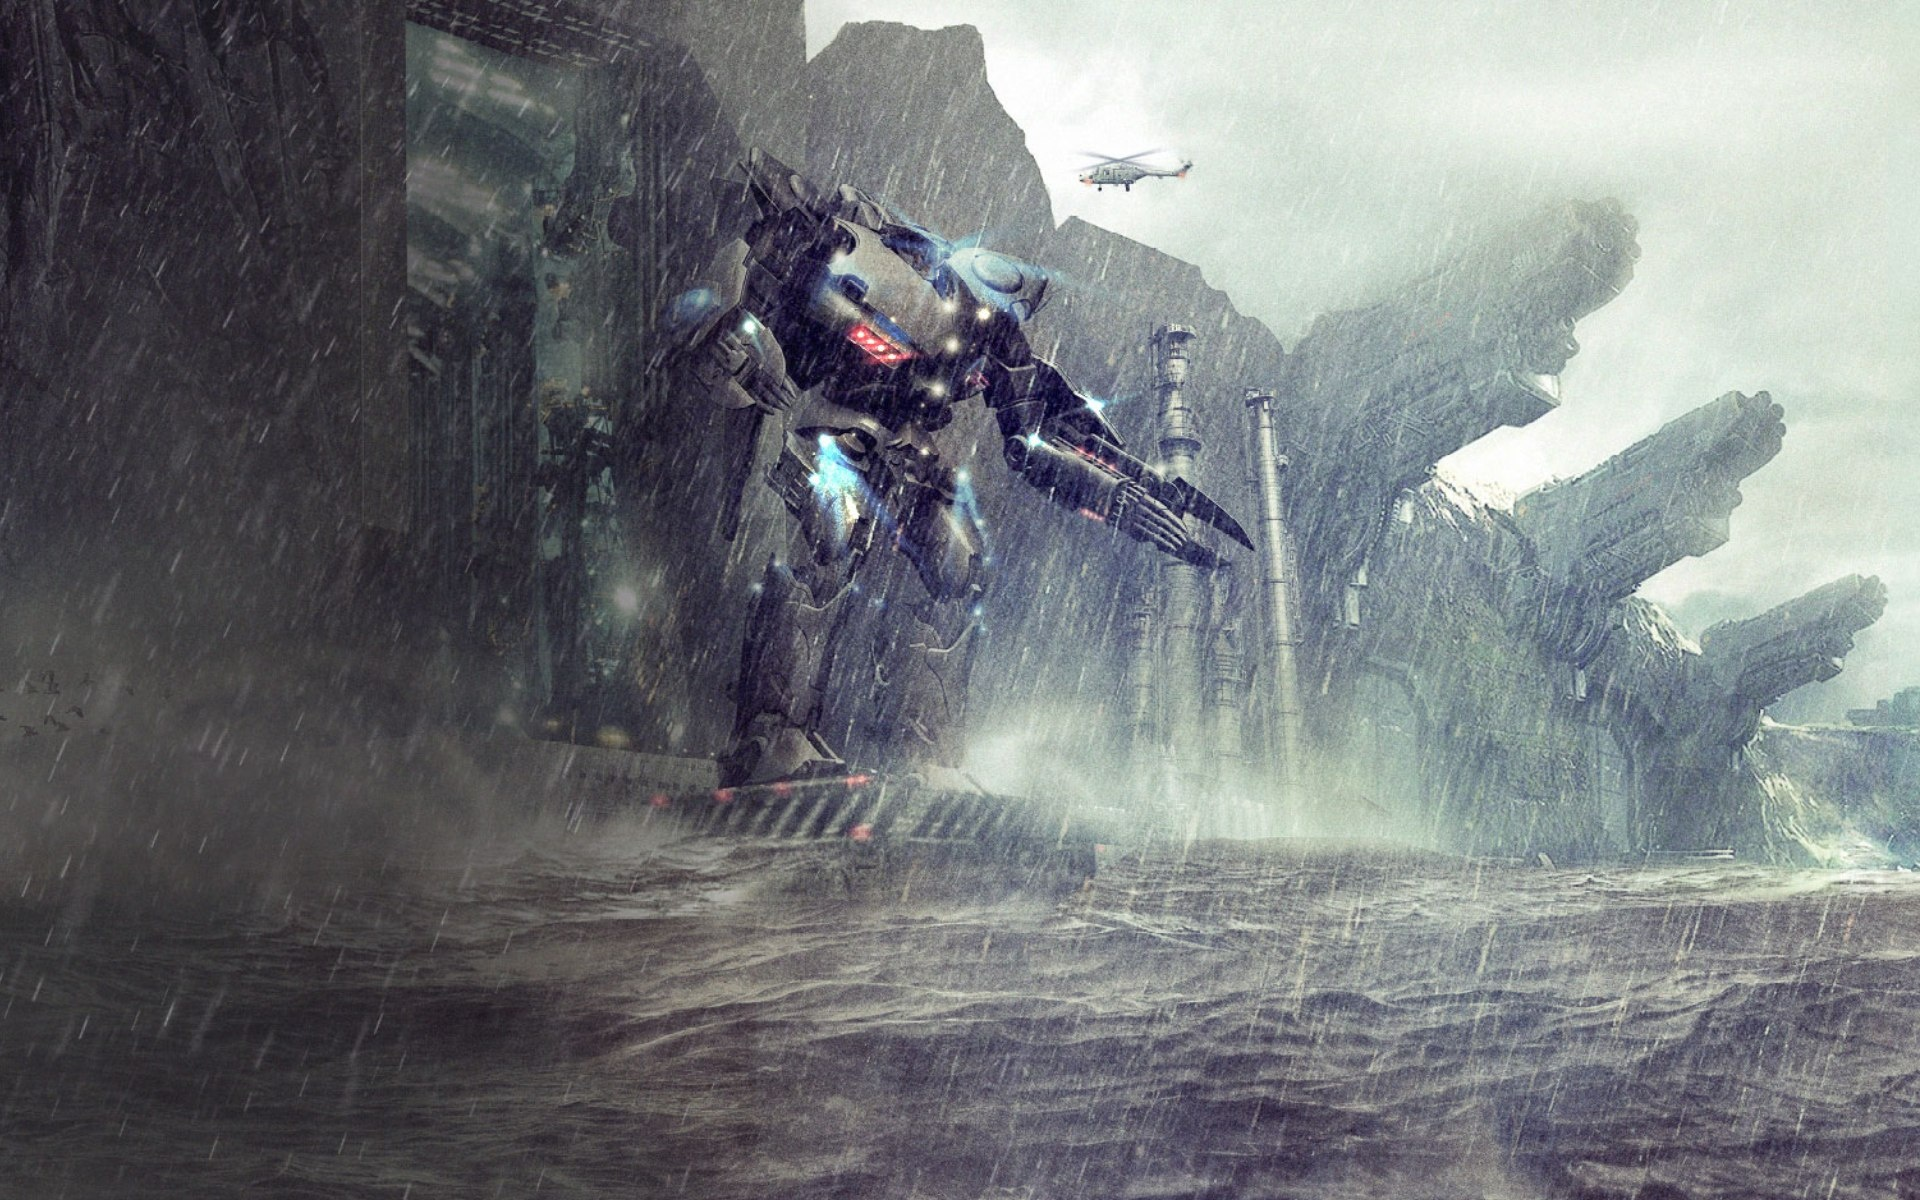 Pacific Rim Movie 2013 Wallpapers - 1920x1200 - 757325 Pacific Rim